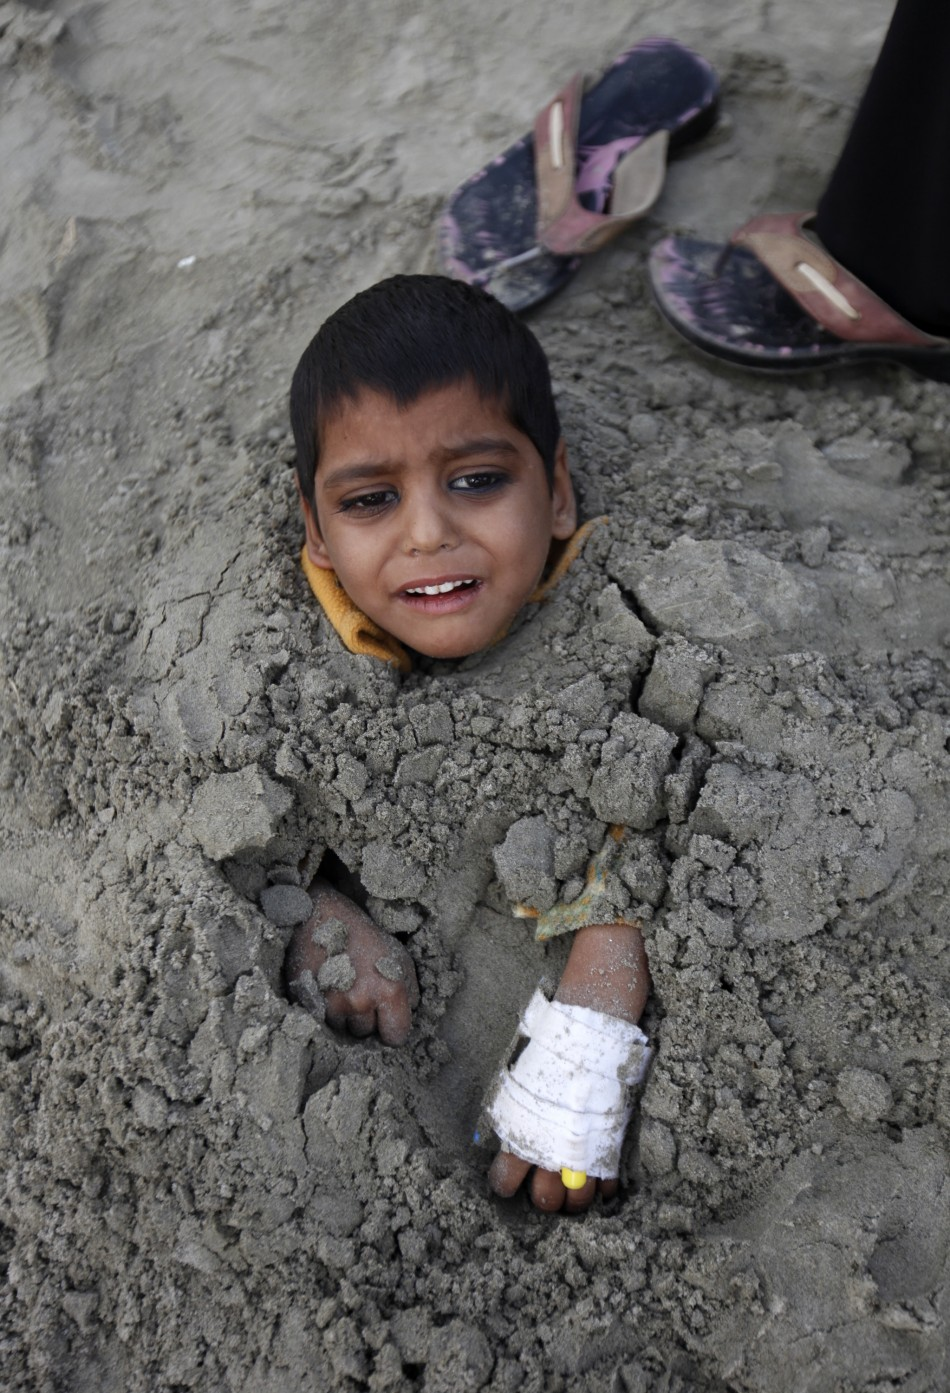 Yasir, a seven-year-old handicapped boy, lies buried in sand up to his neck during a partial solar eclipse at Karachis Clifton beach